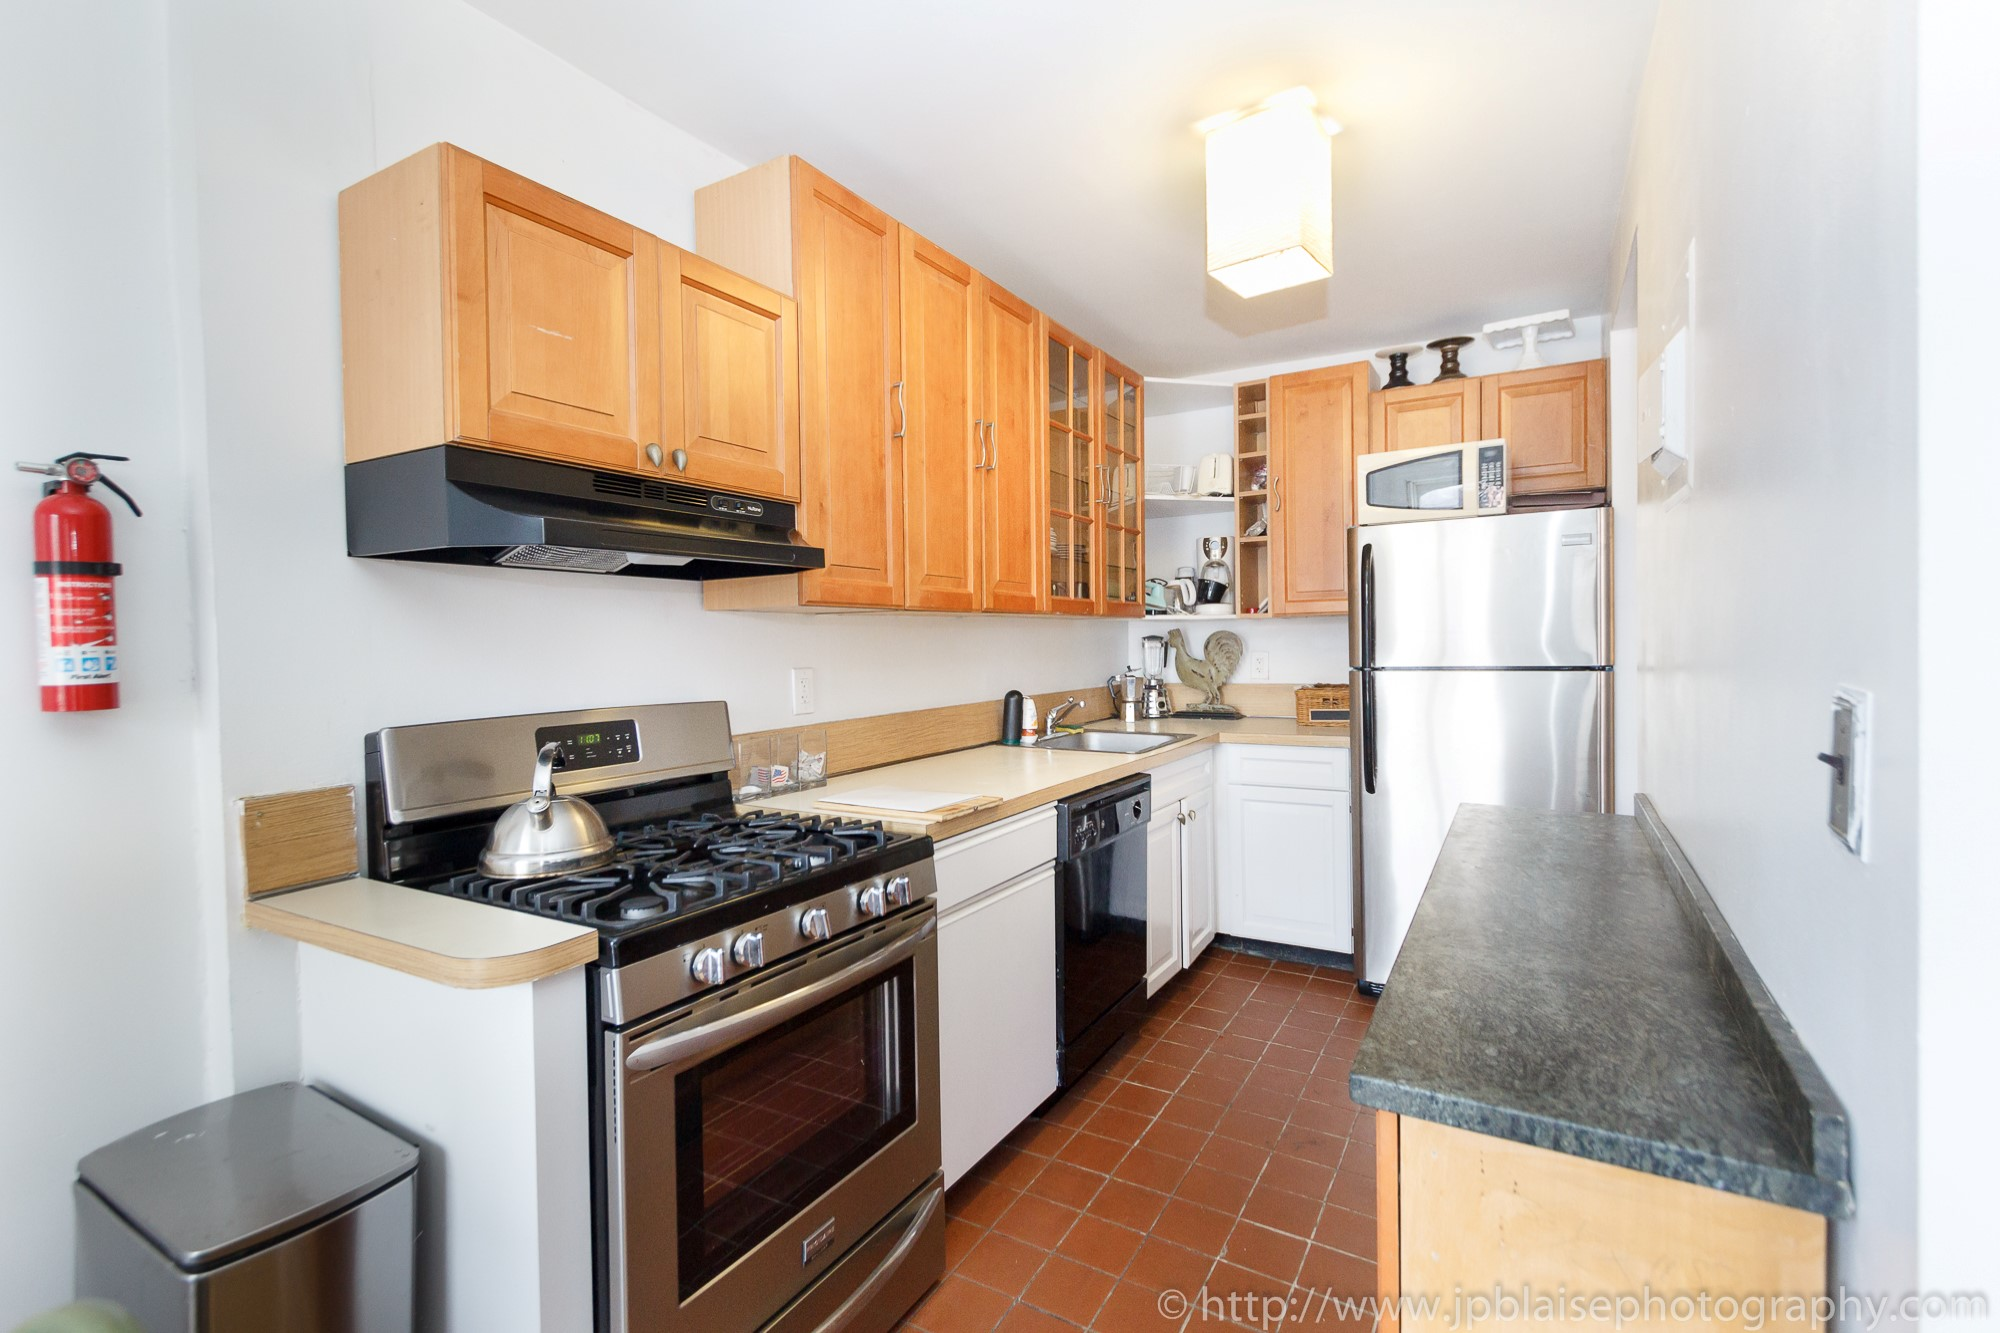 nyc apartment photographer one bedroom fort greene brooklyn new york city  kitchen. New York apartment photographer work of the week  Spacious One